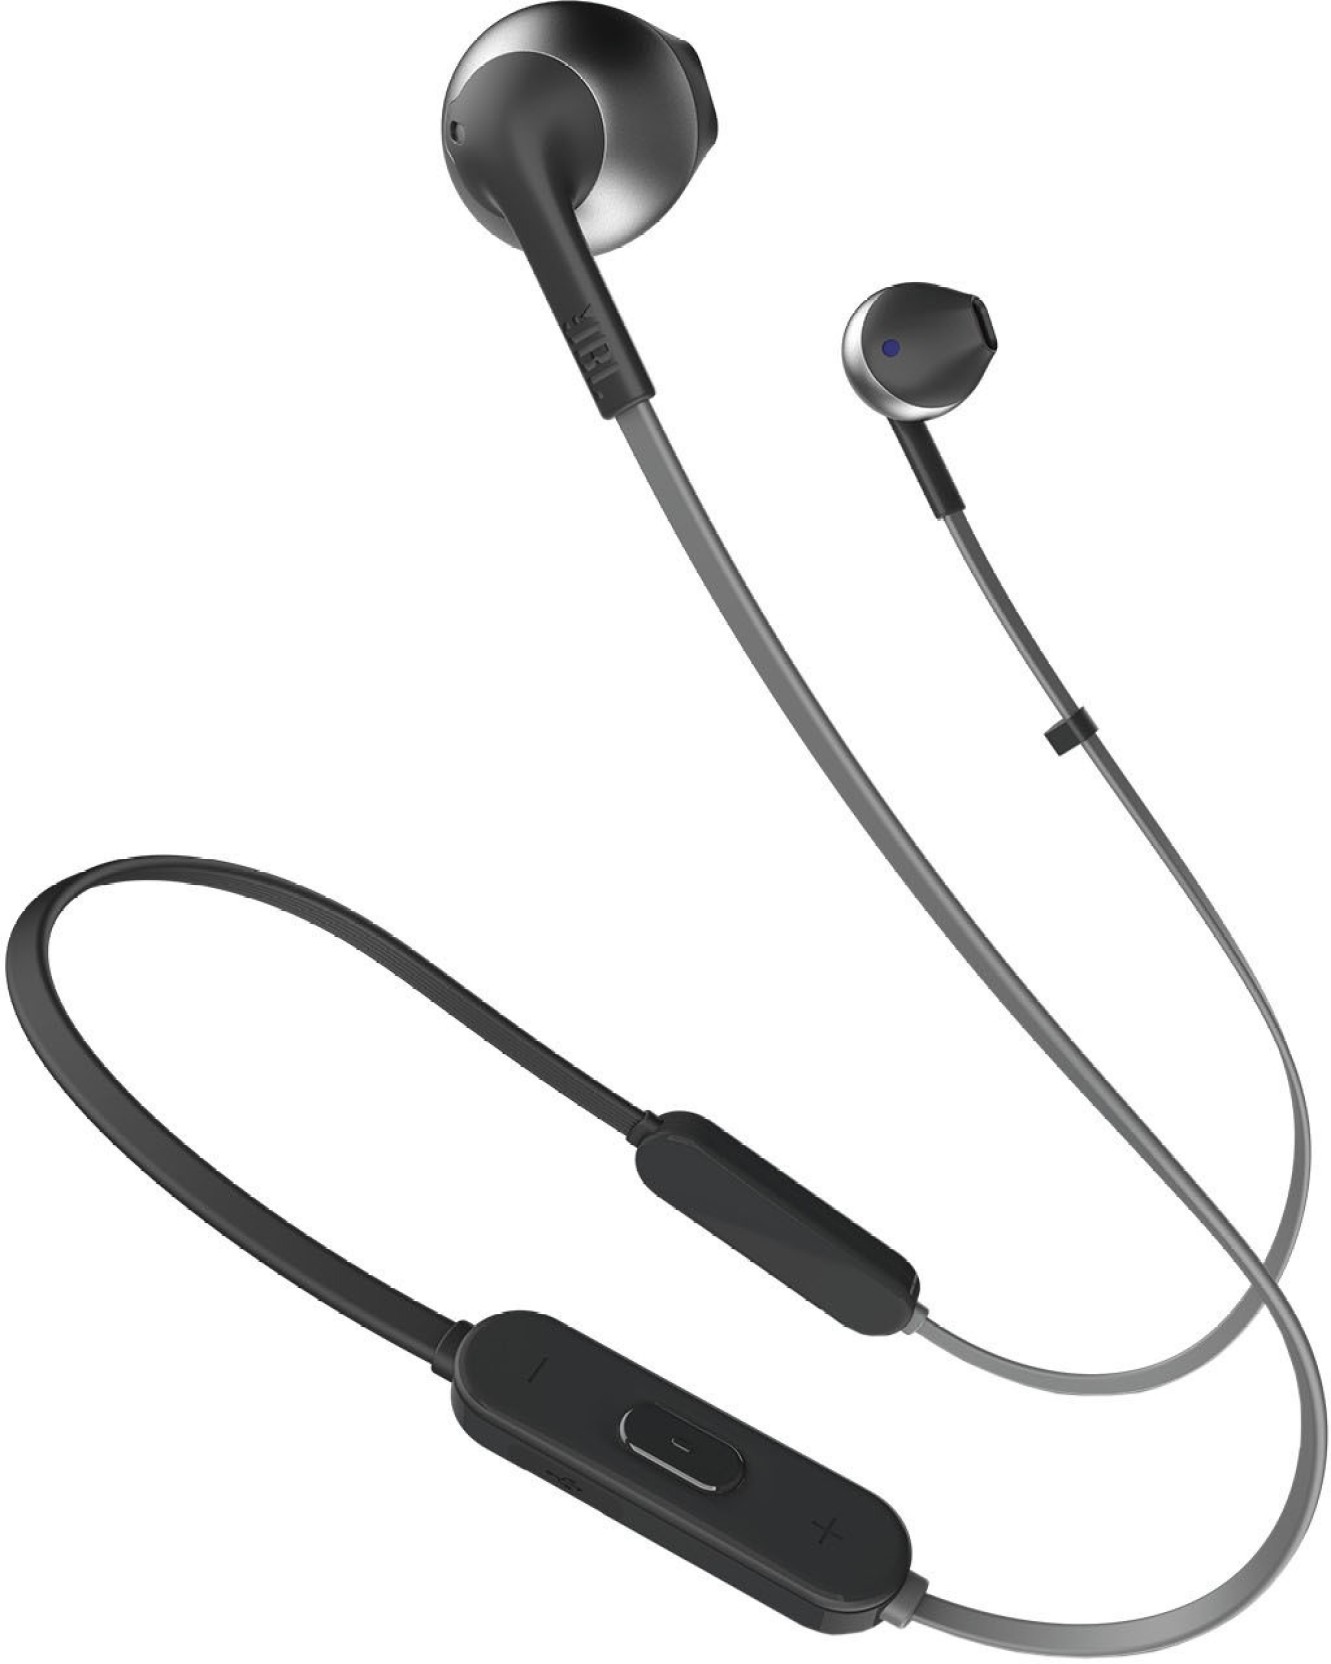 6c79c8570 JBL Bluetooth Headset with Mic Price in India - Buy JBL Bluetooth ...